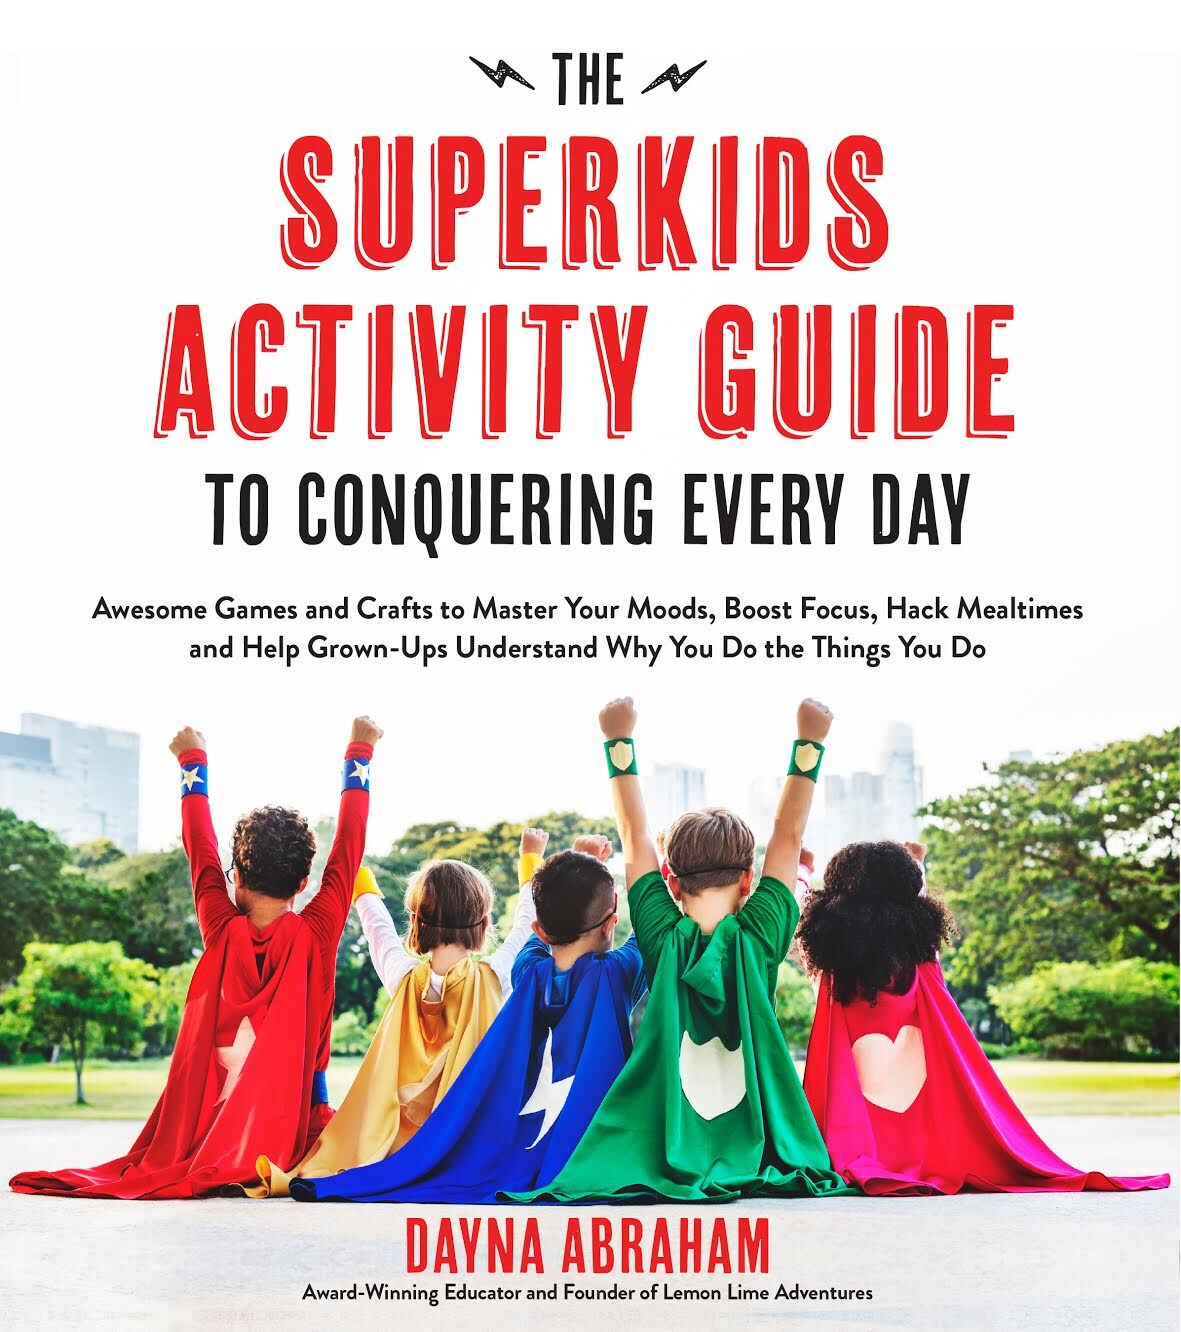 The Superkids Activity Guide!